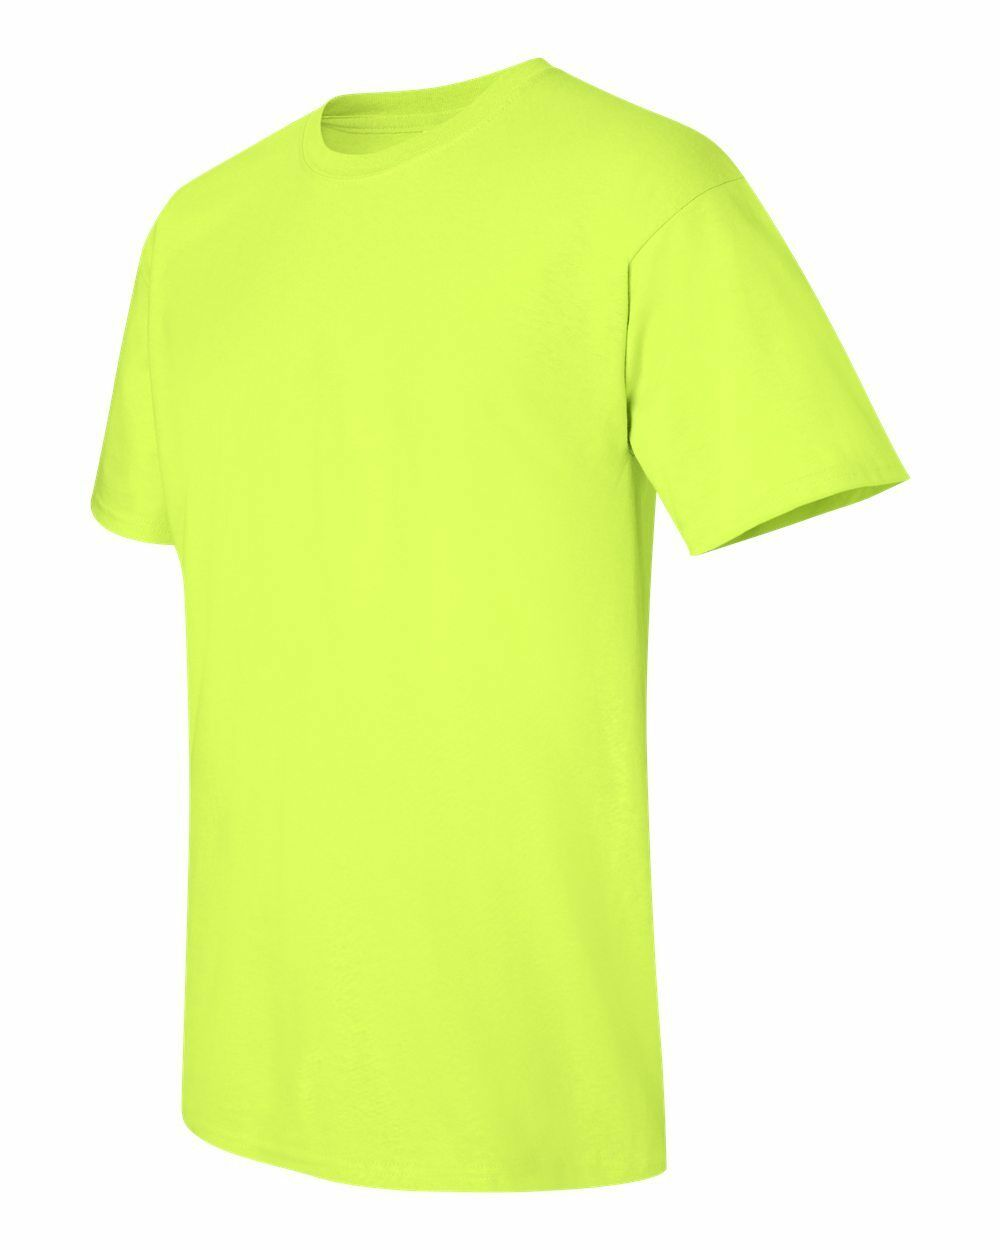 24 Gildan Safety Green Blank Bulk Wholesale Lot Adult Plain T-Shirts S M L XL